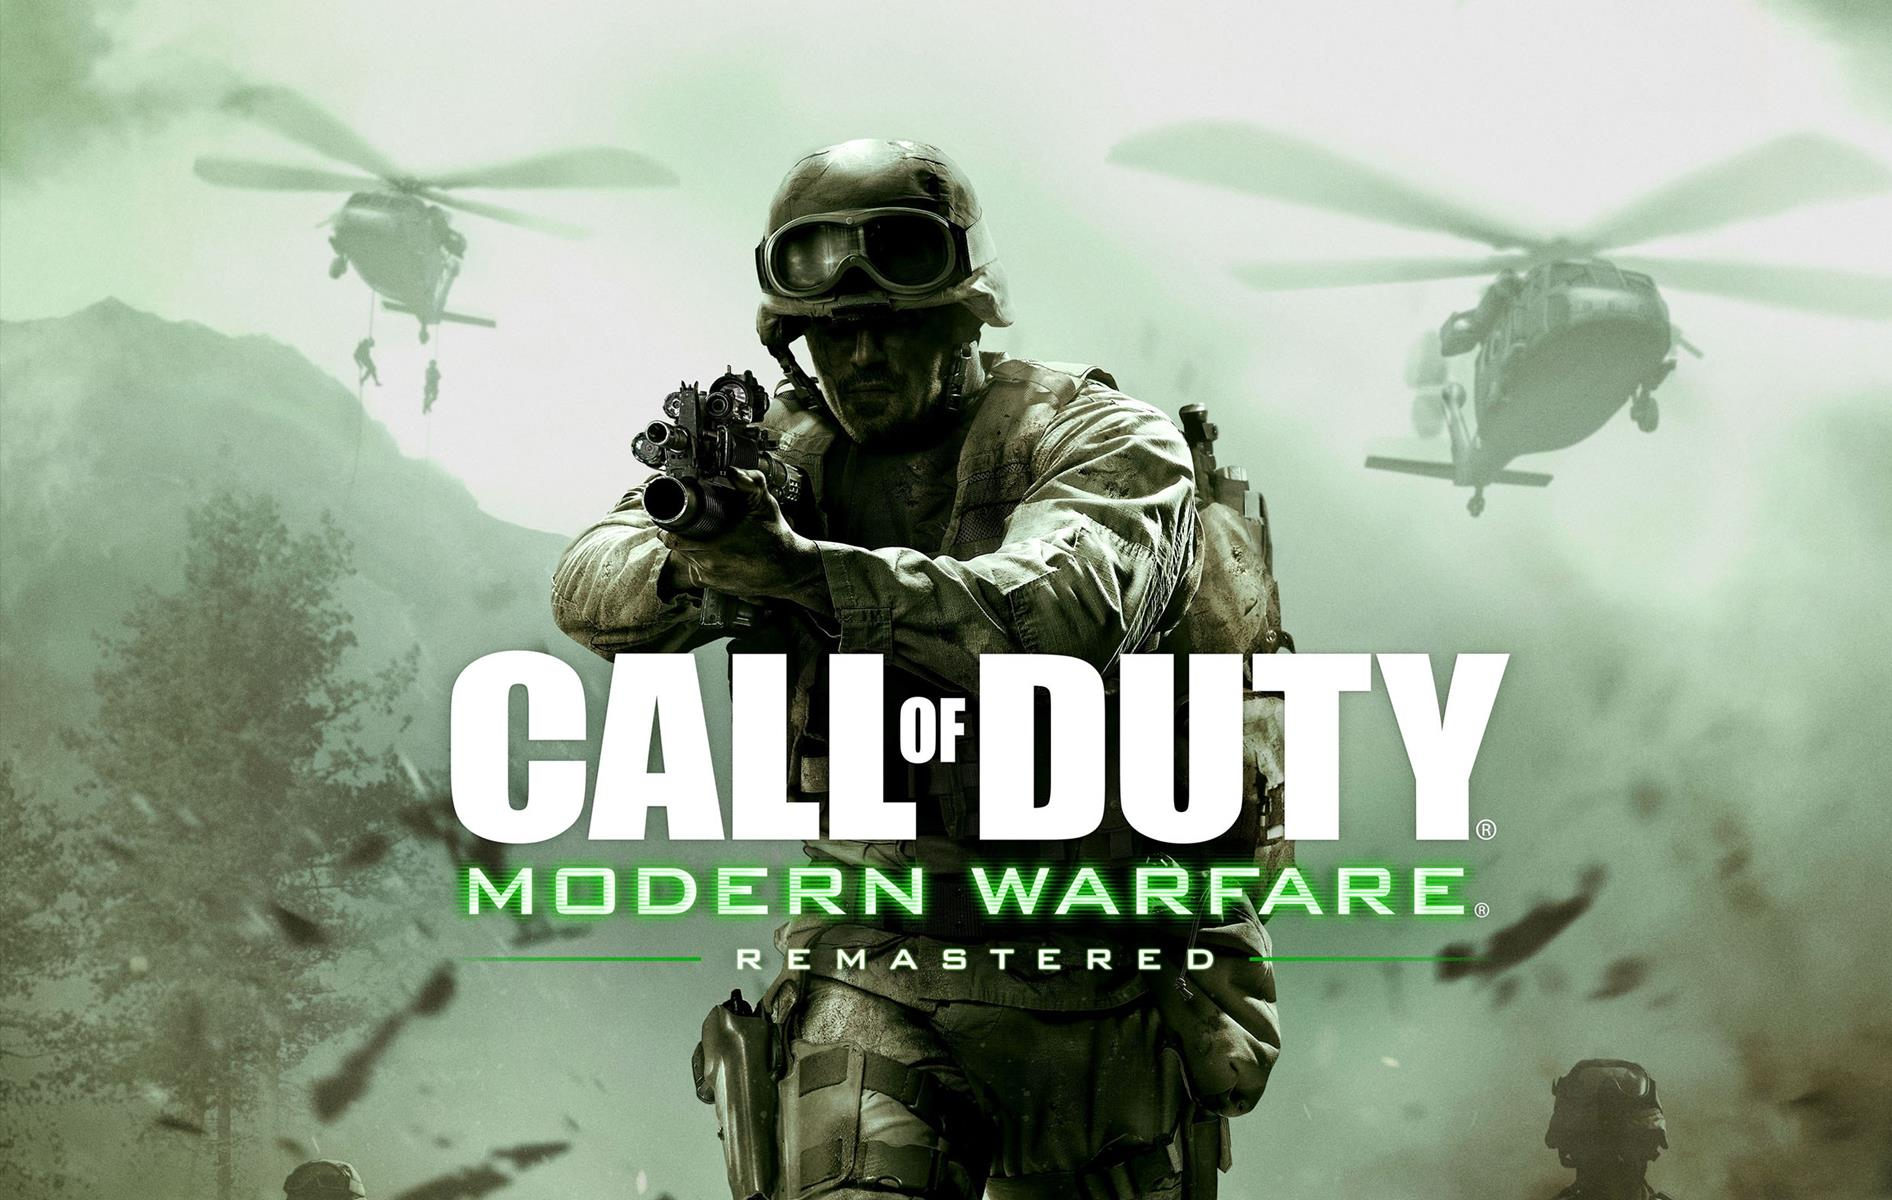 Call of Duty: Modern Warfare Remastered Standalone Releases on June 27th